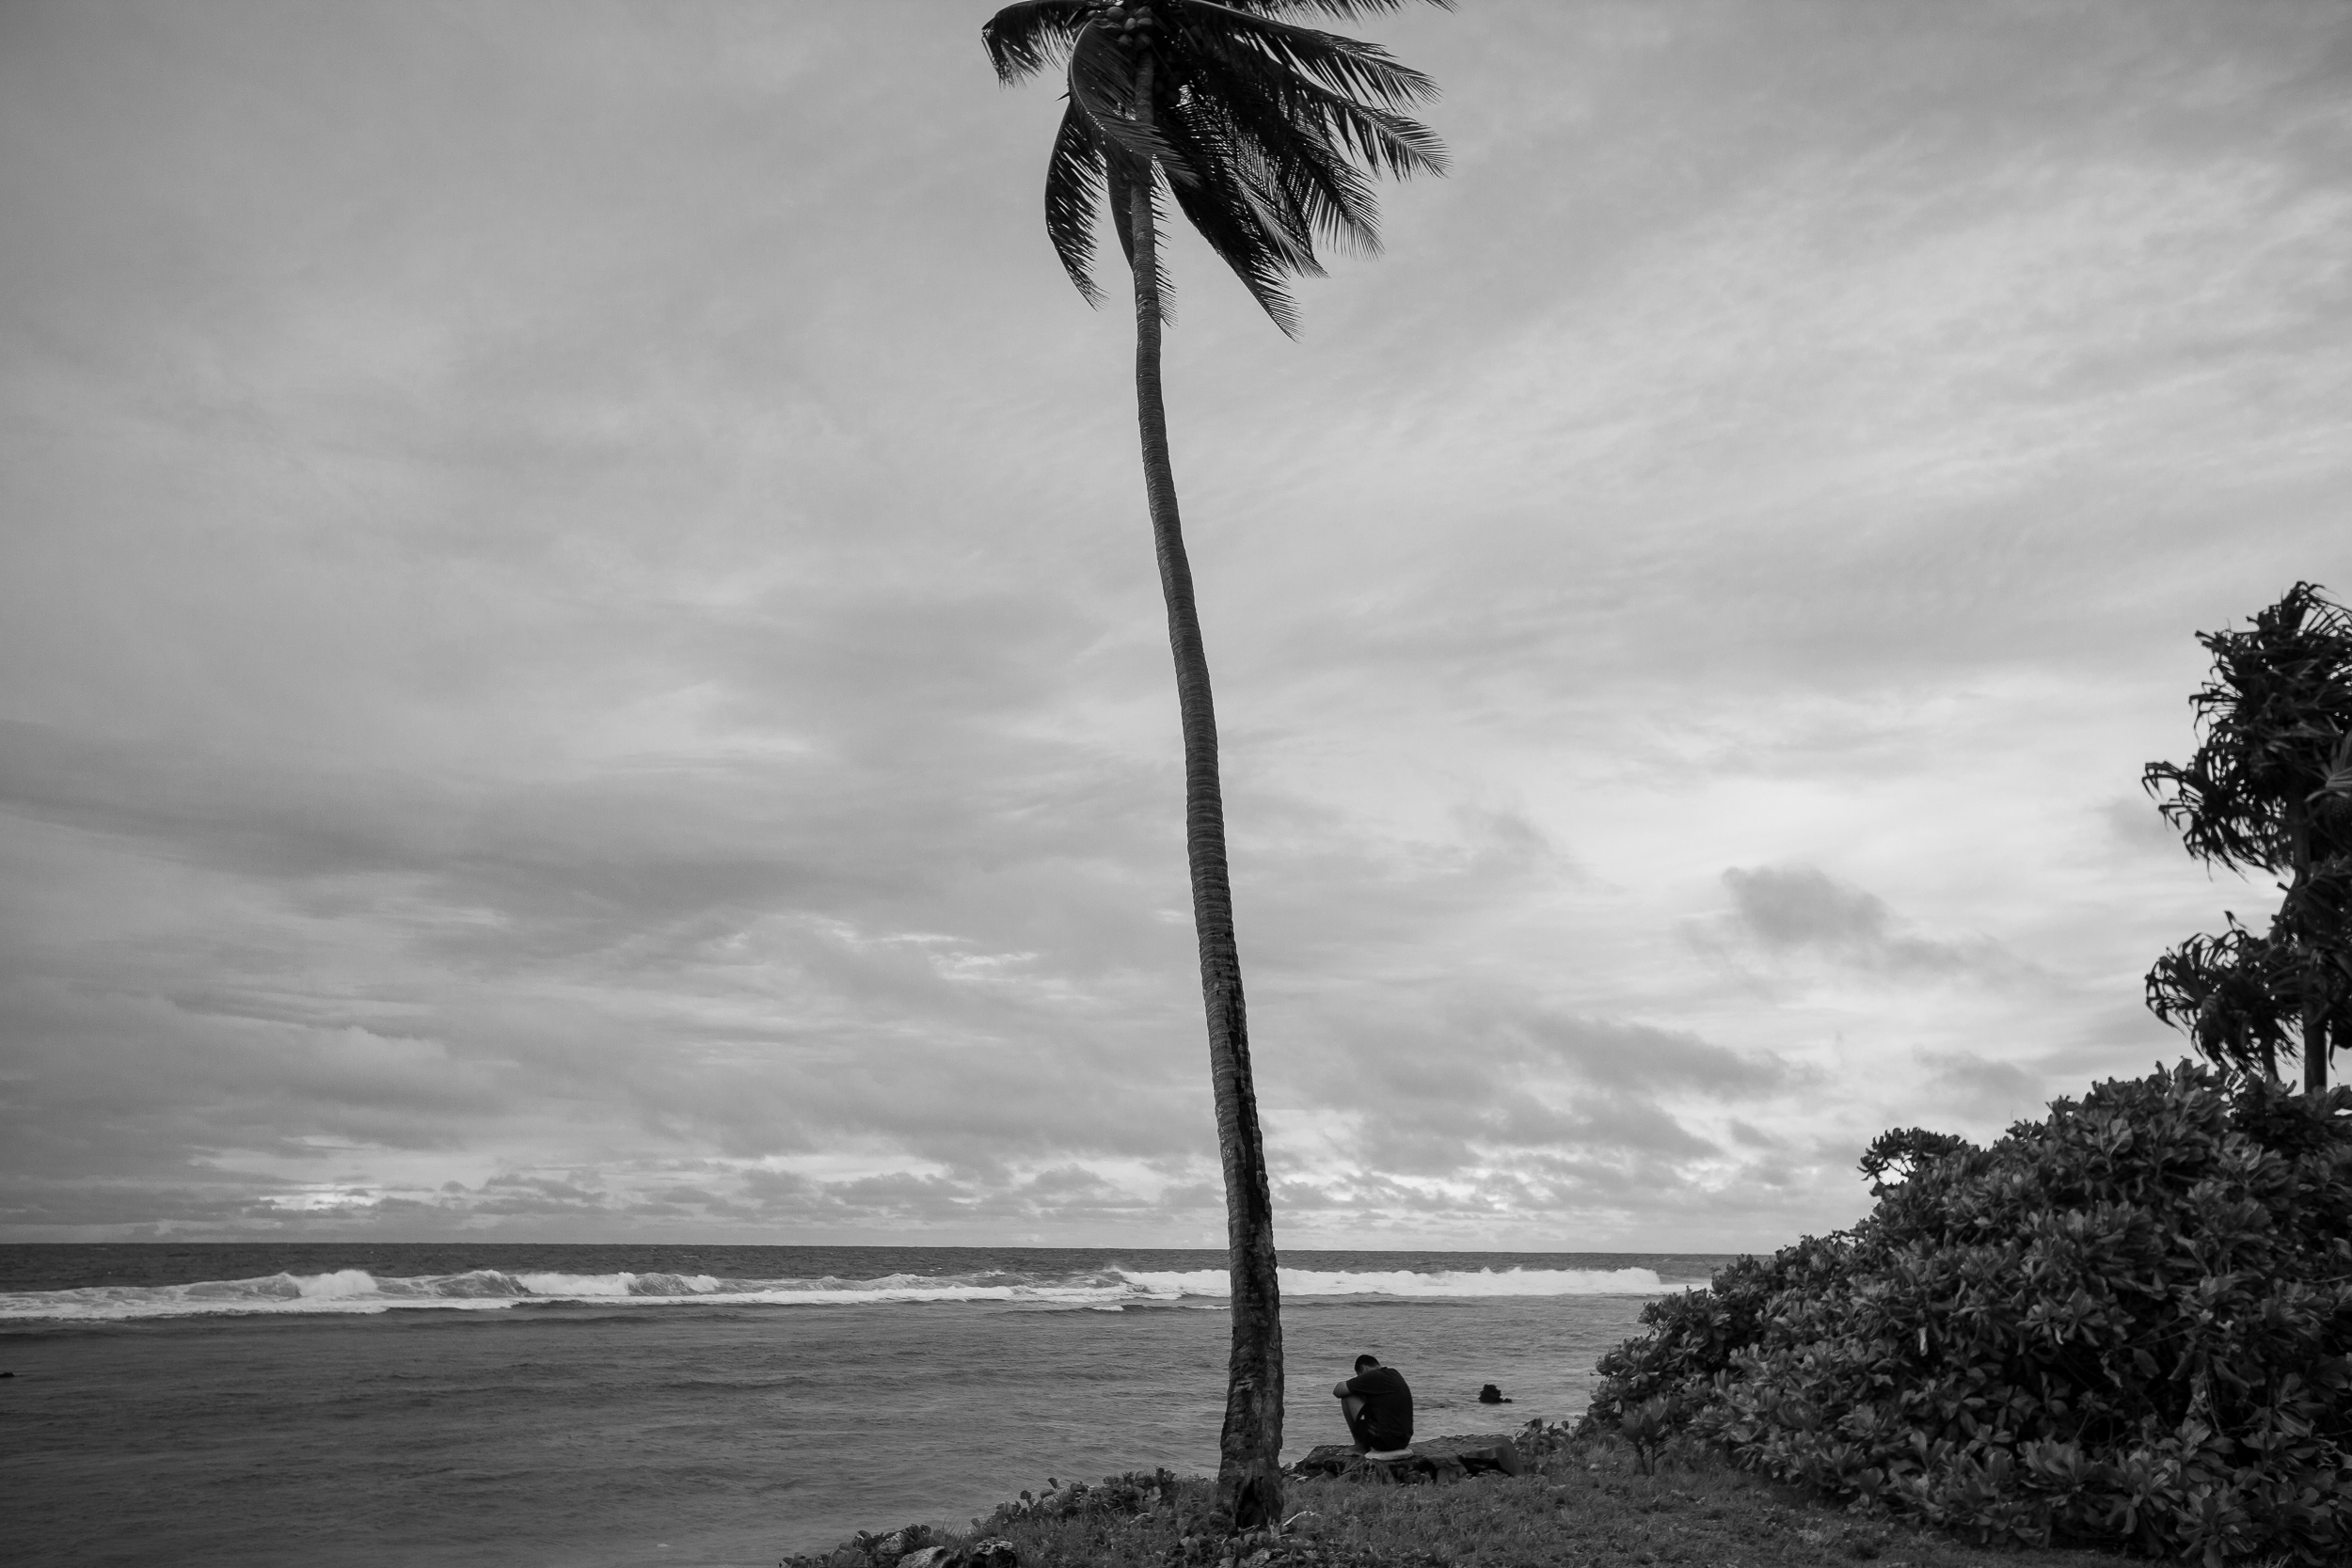 An Iranian refugee looks out to sea outside Ijuw camp. Refugees on Nauru feel an acute sense of being stuck in limbo. Those accepted as refugees were released into the community on a 6 month visa, which have long expired and despite frequent queries to immigration, have not been told what will come next. Others whose claims are still being processed continue to be held in detention almost two years after arriving on Nauru.